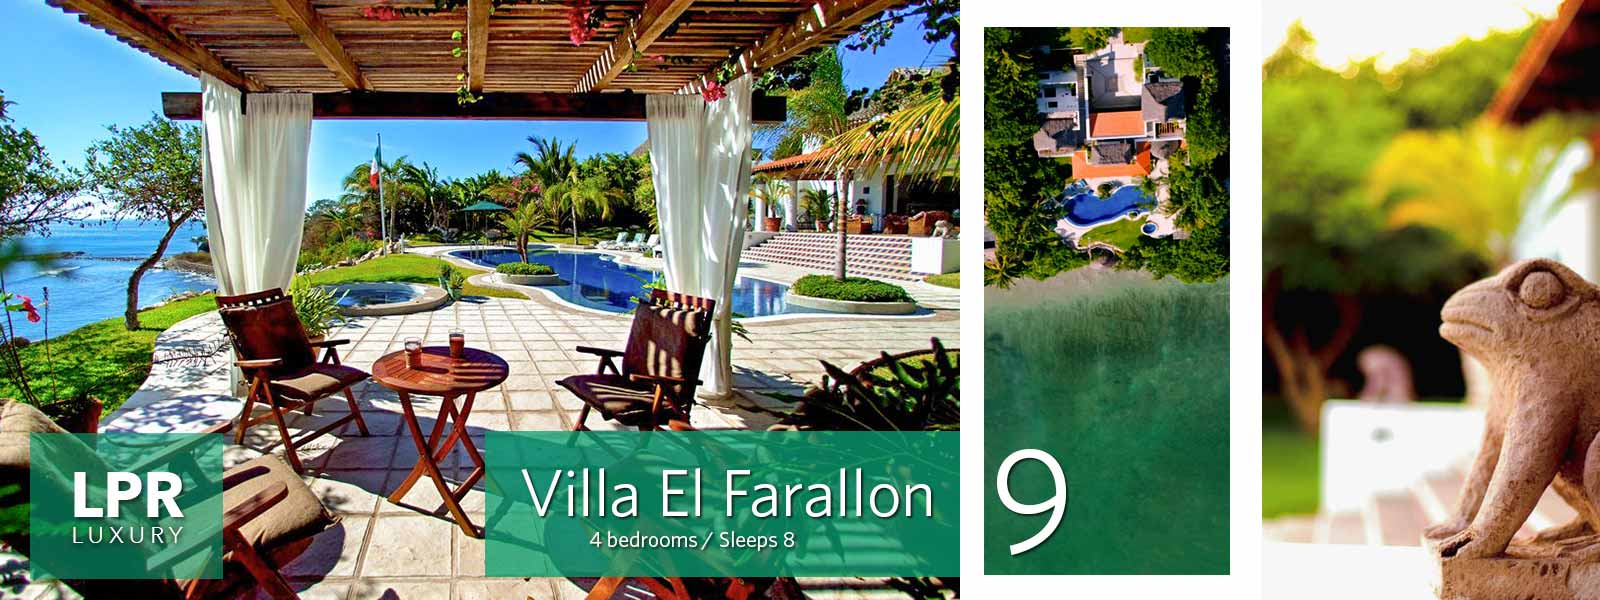 Villa El Farallon 9 - Luxury Punta Mita Rentals and Real Estate - Vallarta | Nayarit, Mexico